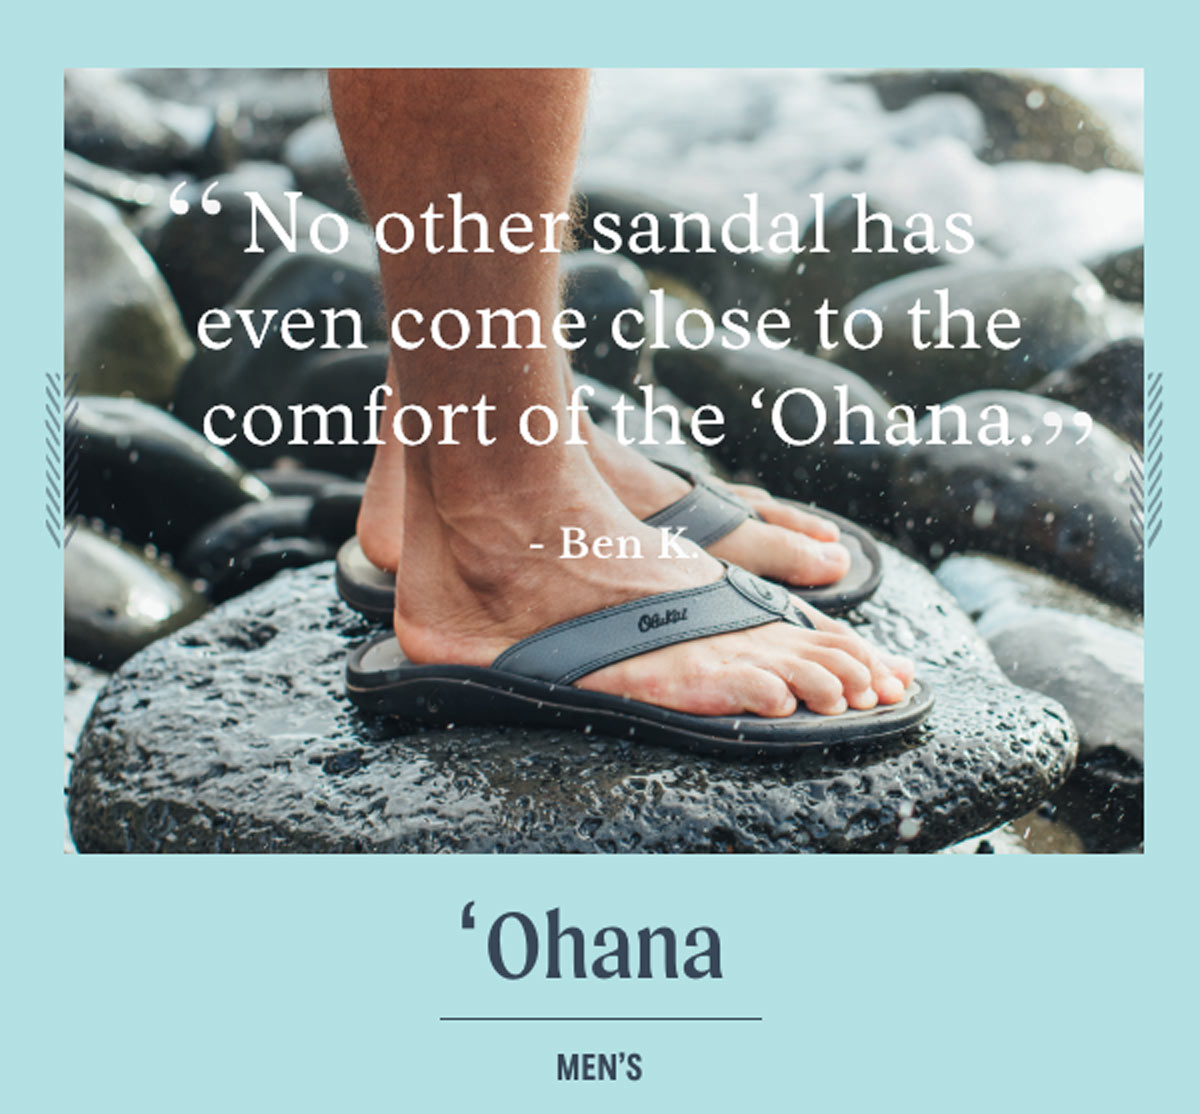 ''No other sandal has even come close to the comfort of the 'Ohana.'' - Ben K. Men's 'Ohana sandal.